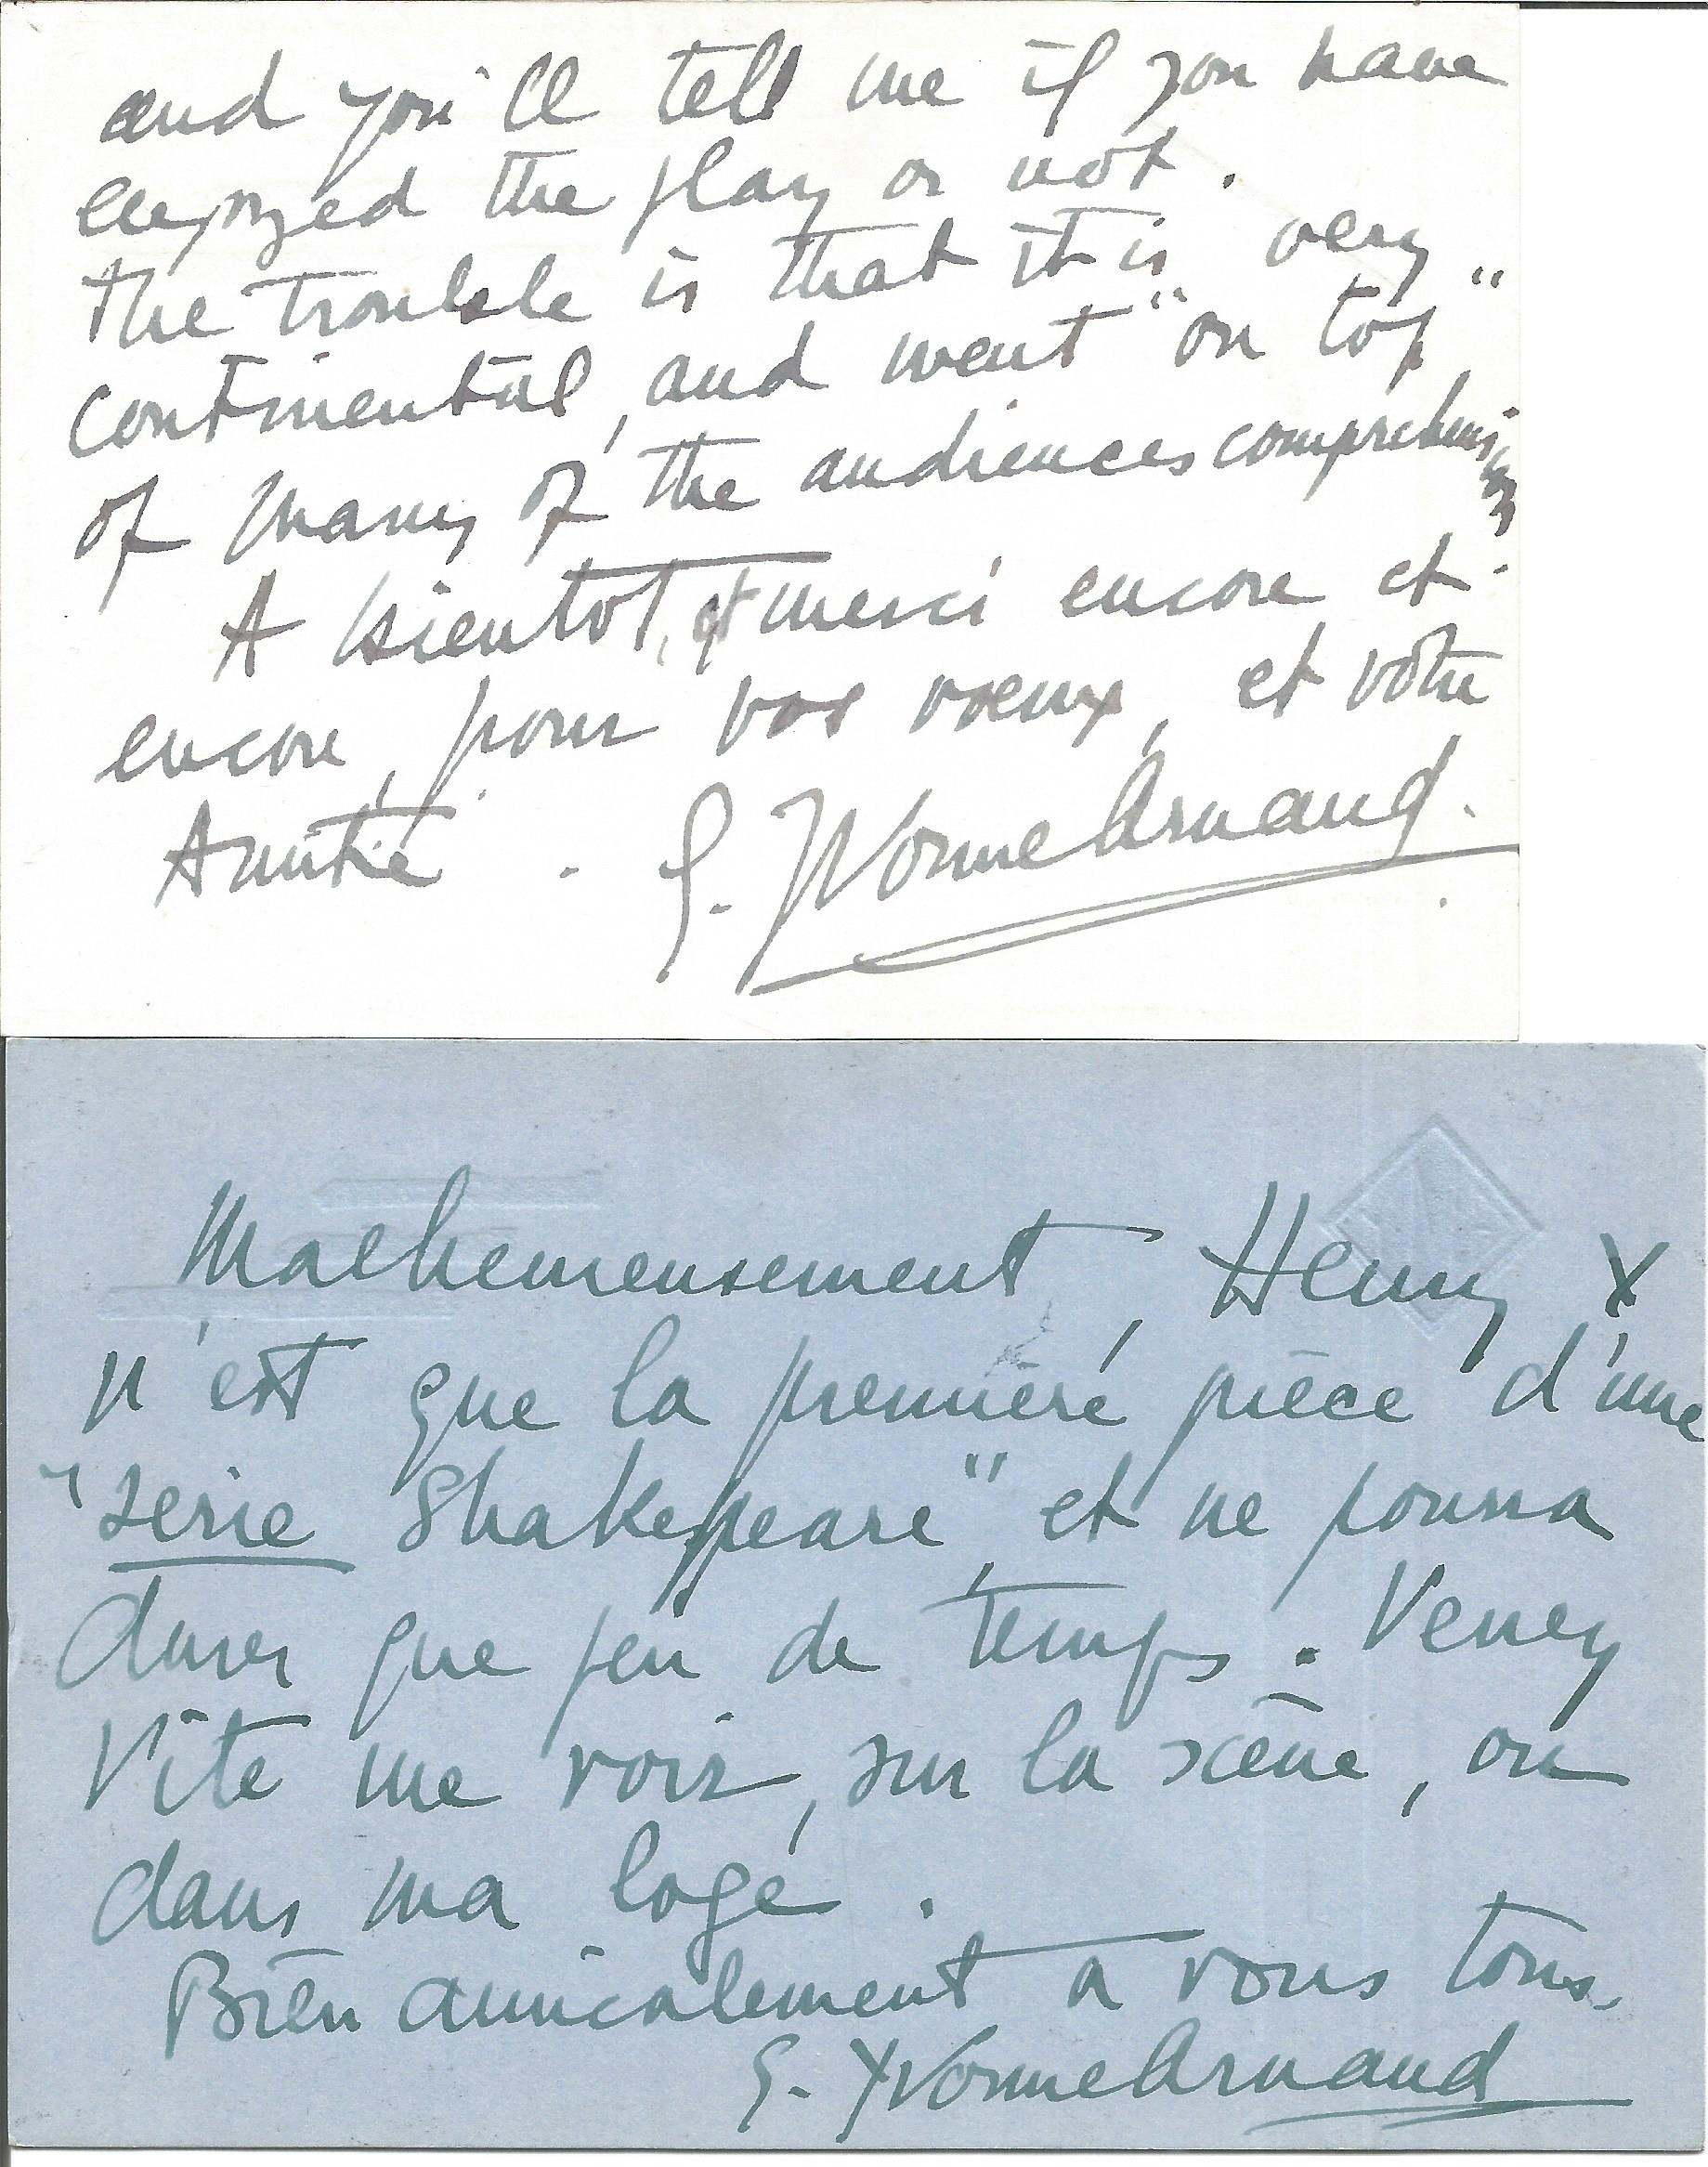 Yvonne Arnaud two hand written corresp. cards to Ginette Spanier (in French), director of the. - Image 2 of 2